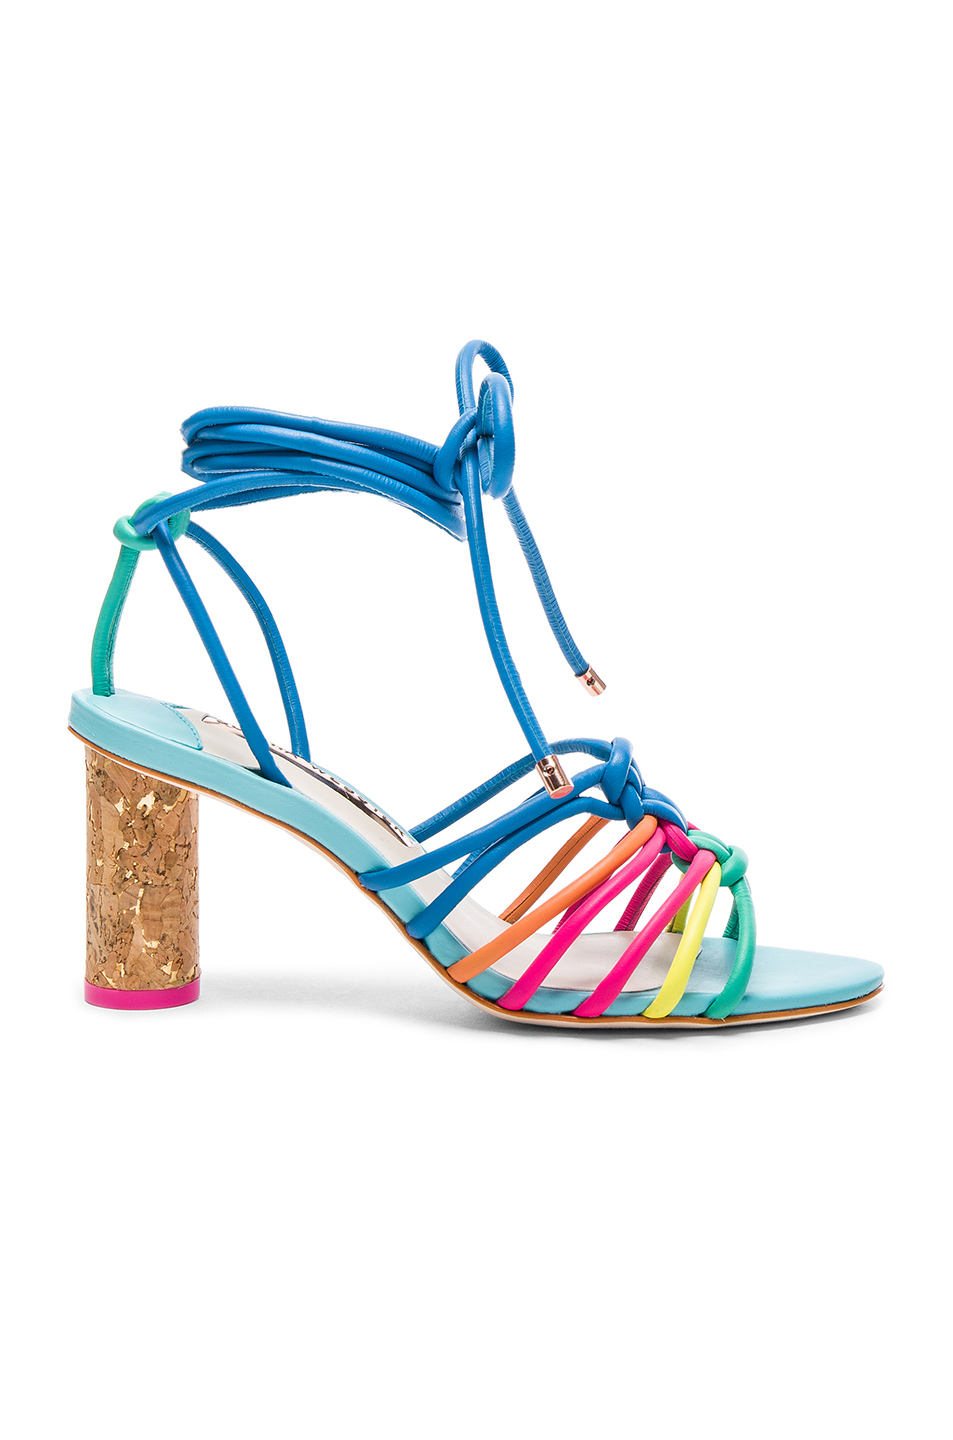 Sophia Webster Leather Copacabana Mid Sandals in Blue,Green,Pink